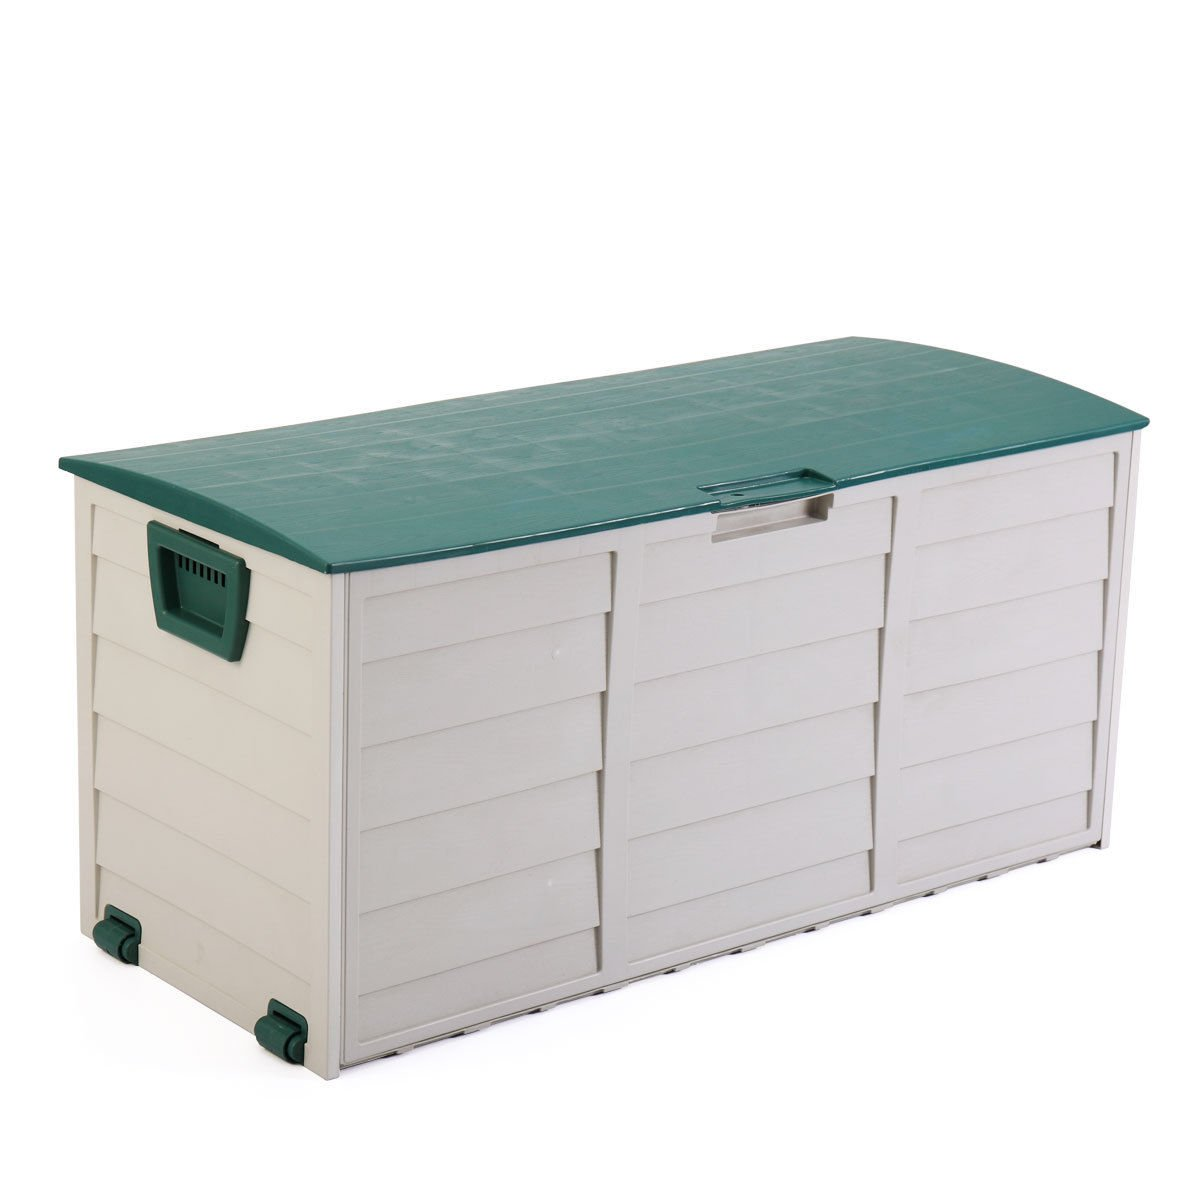 Cheap Garden Tool Box Find Deals On Line At Alibabacom Outdoor Get Quotations Jaxpety Storage Shed Patio Deck Furniture Yard Container Utility